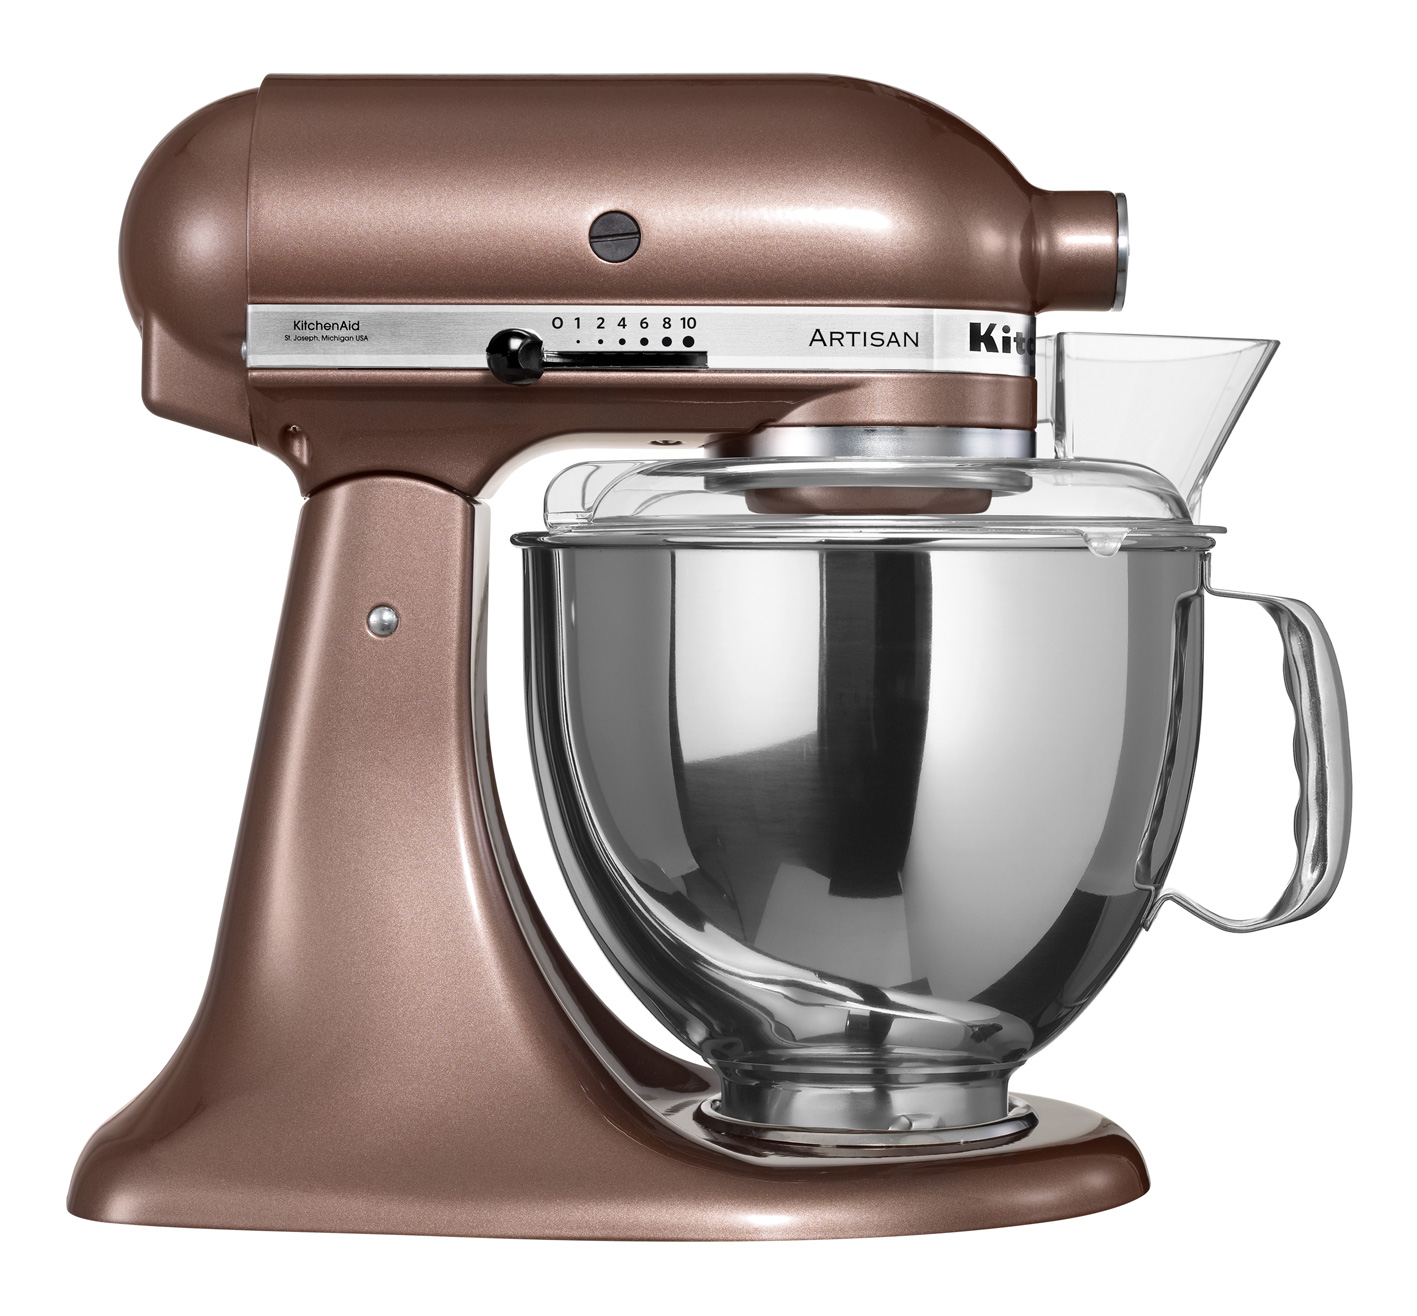 220 Volt KitchenAid 5KSM150PSEAP Artisan Stand Mixer  Apple Cider